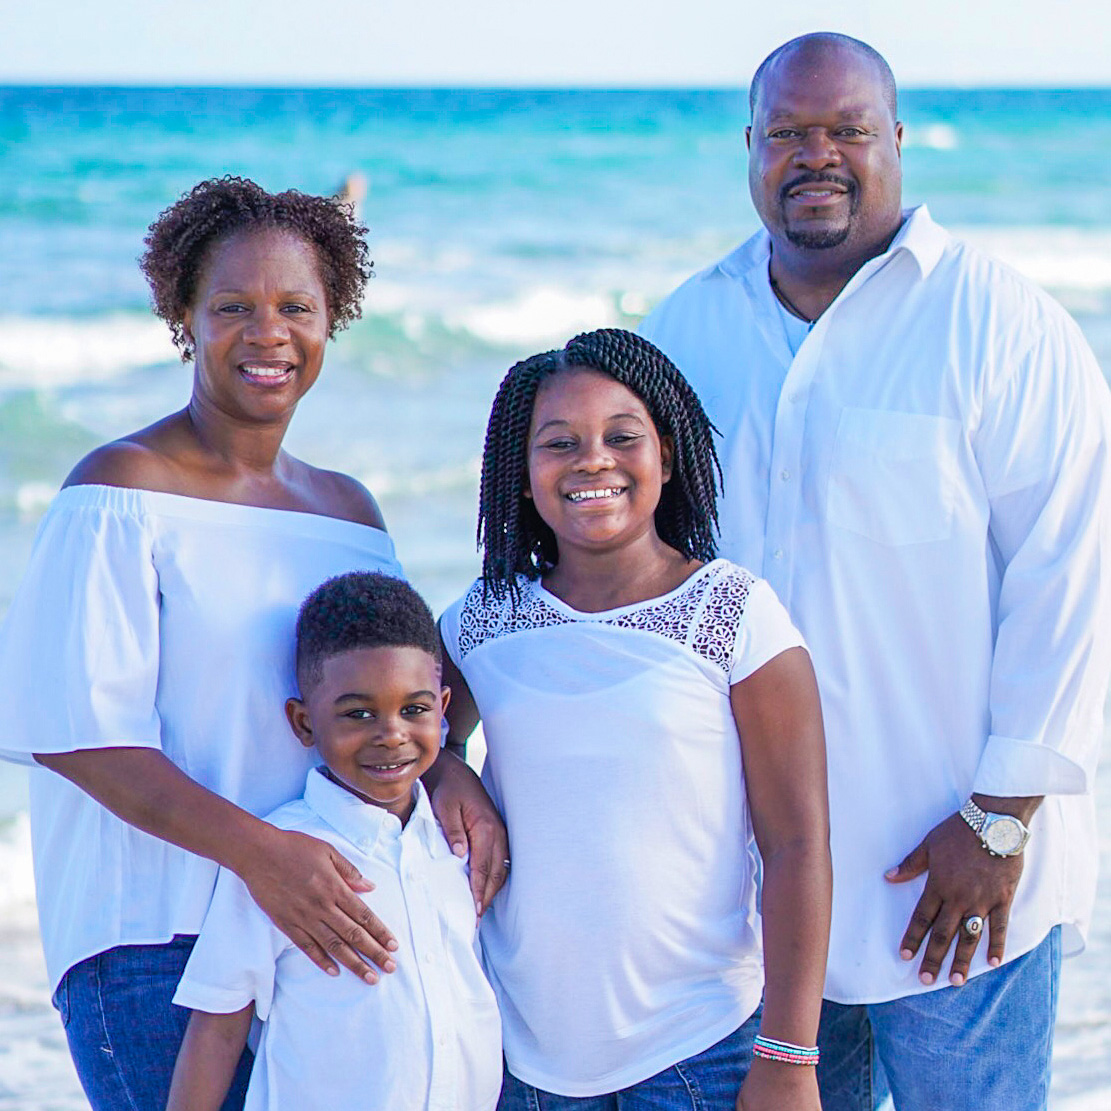 The Colemans